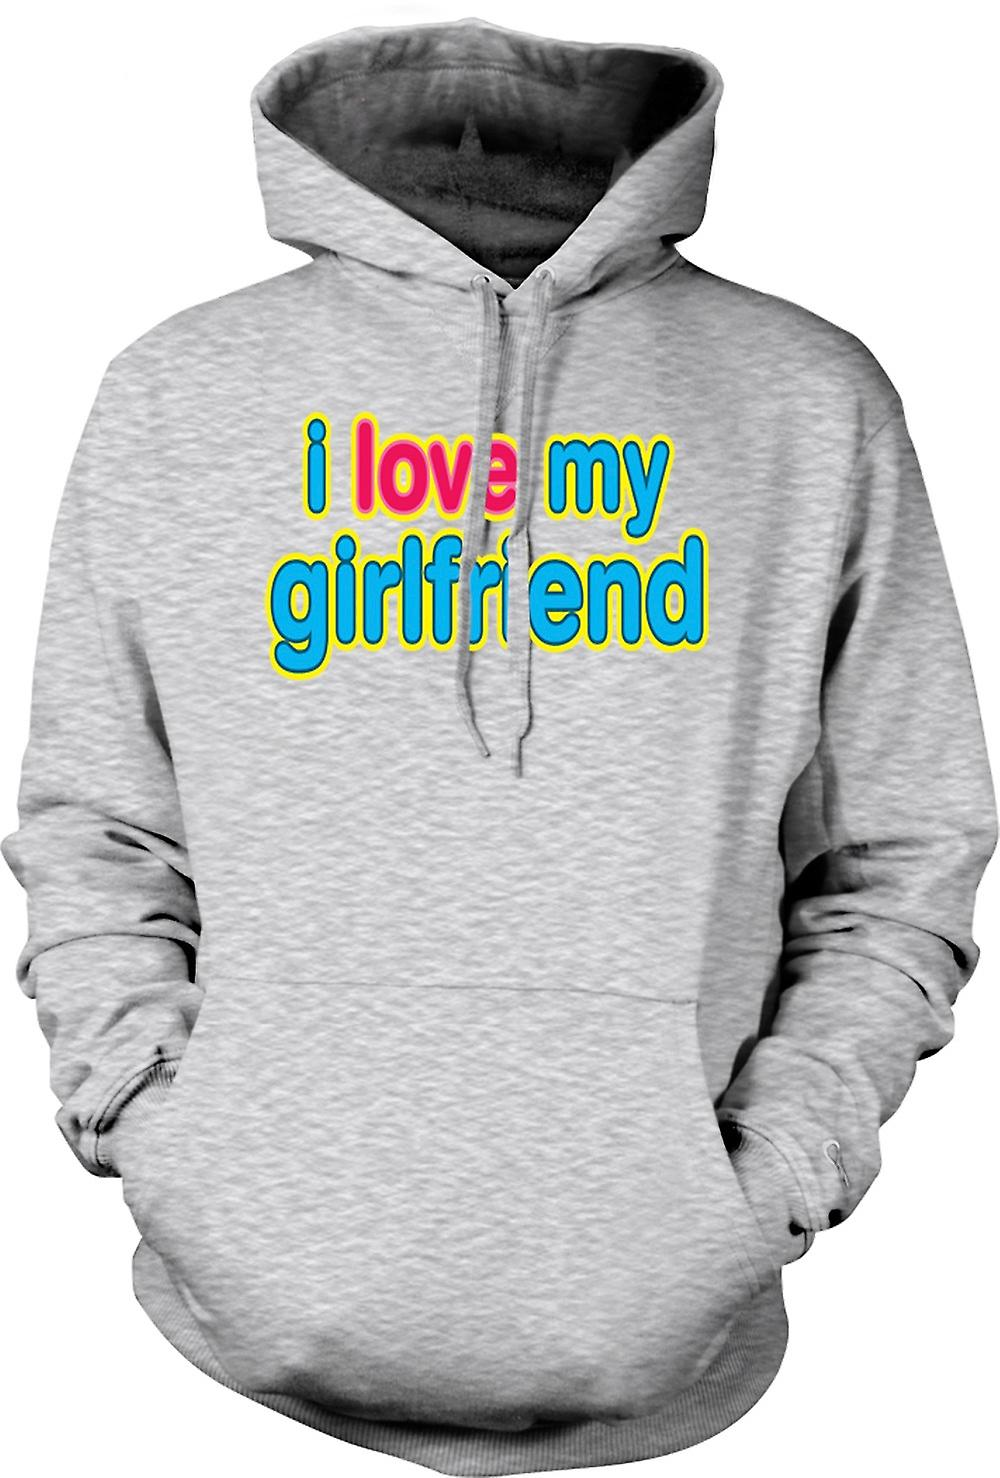 Mens Hoodie - I Love My Girlfriend - Funny